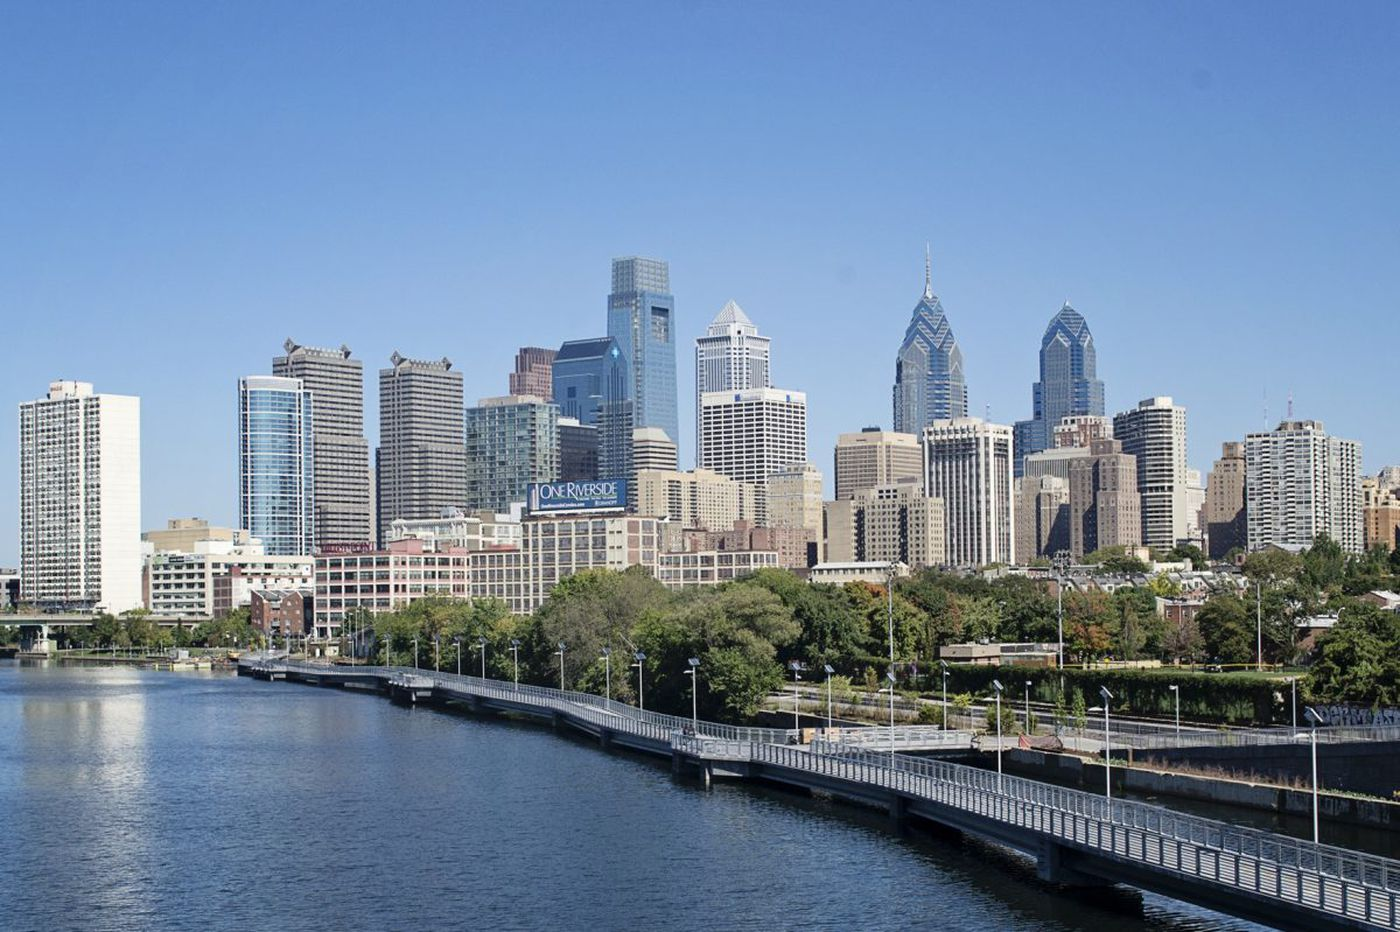 Commercial property owners sue Philly, allege selective reassessments